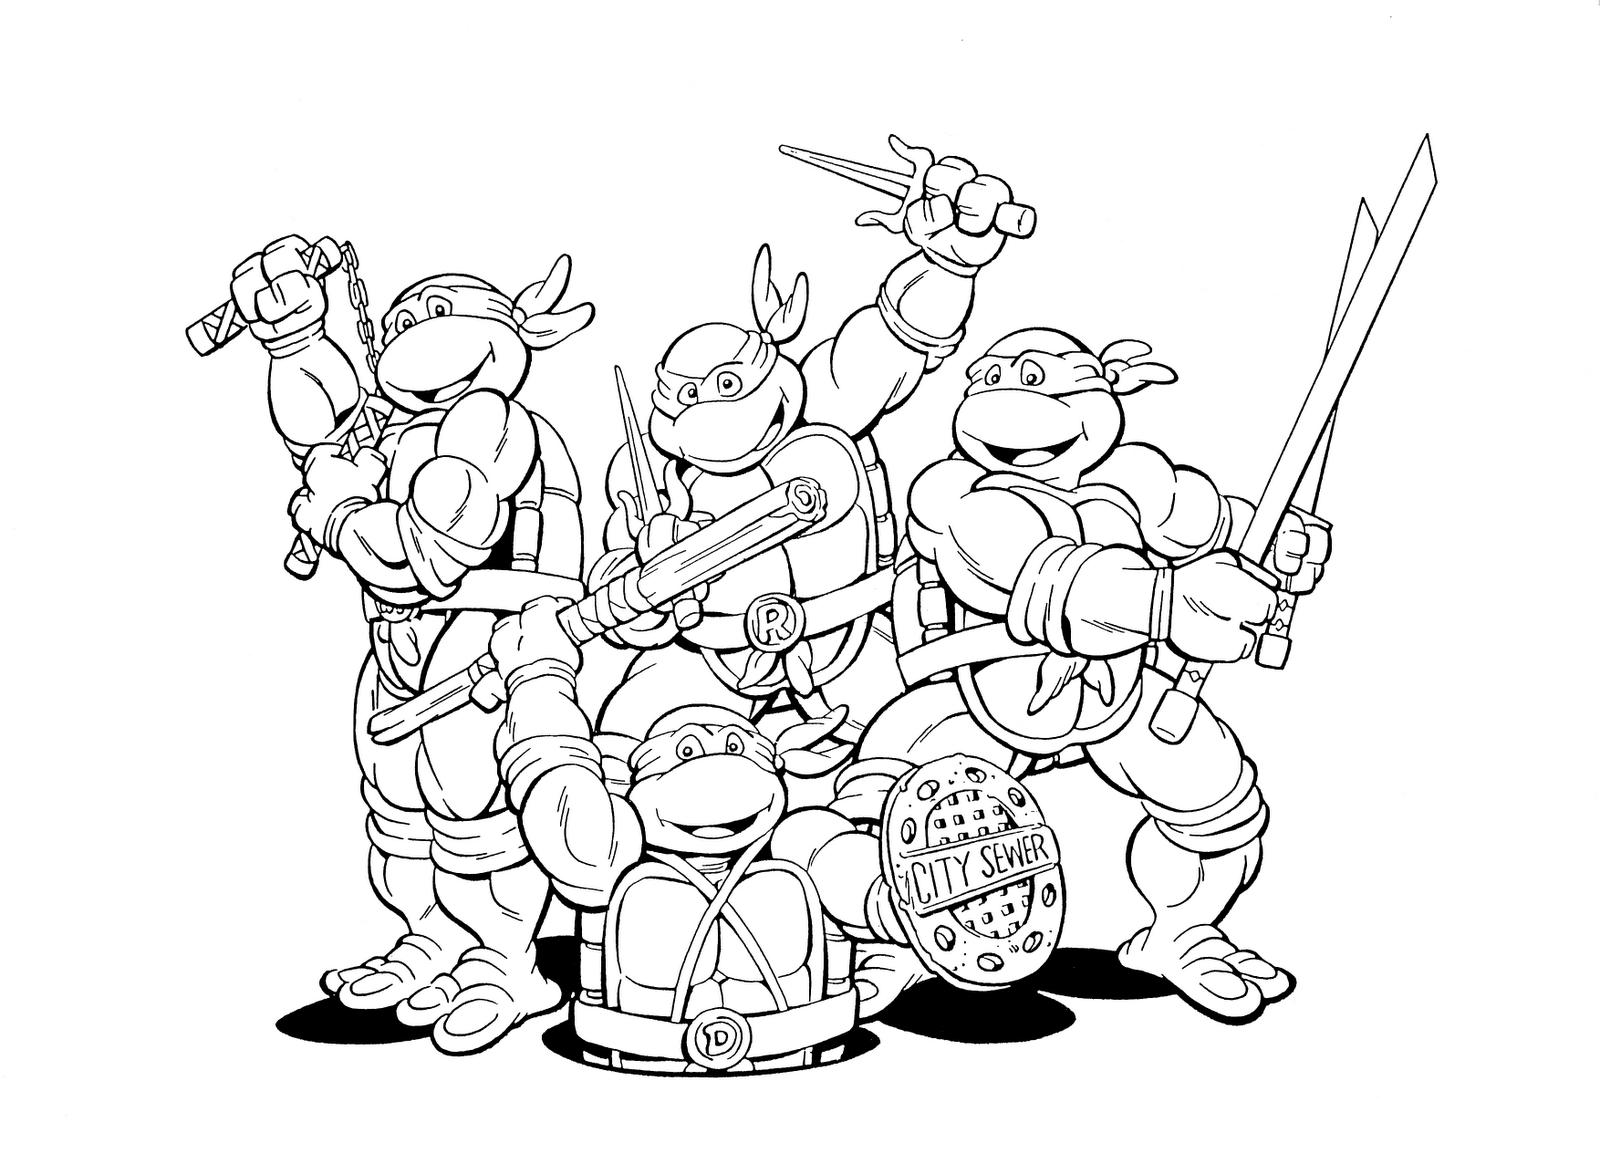 ninja turtle coloring pages easy teenage mutant ninja turtle coloring pages coloring coloring ninja pages turtle